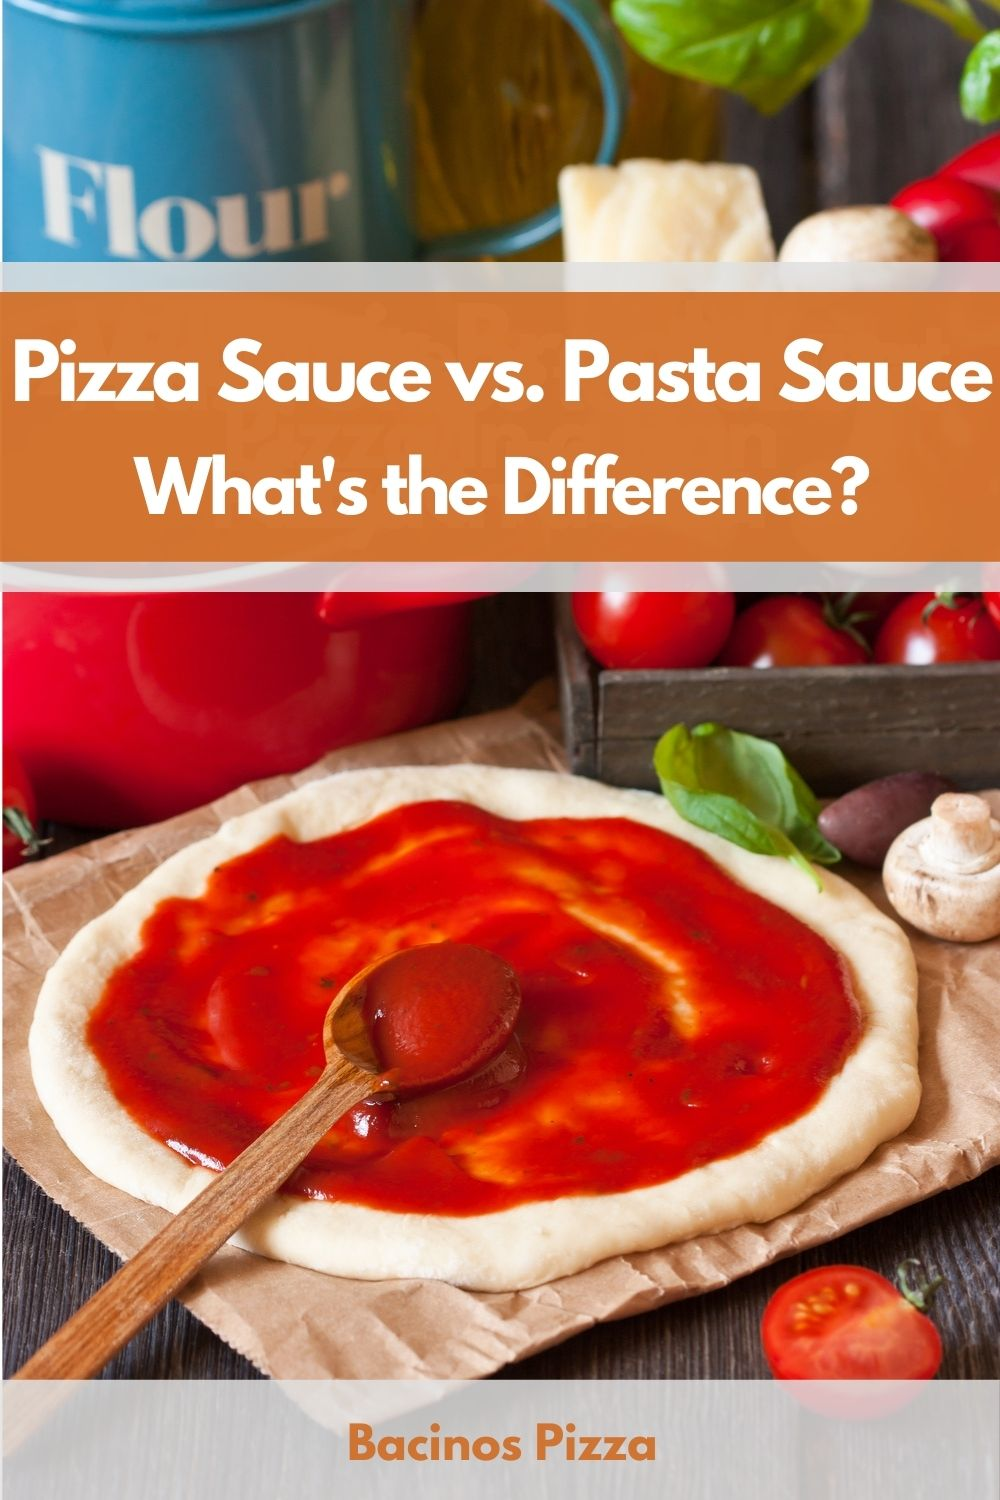 Pizza Sauce vs. Pasta Sauce What's the Difference pin